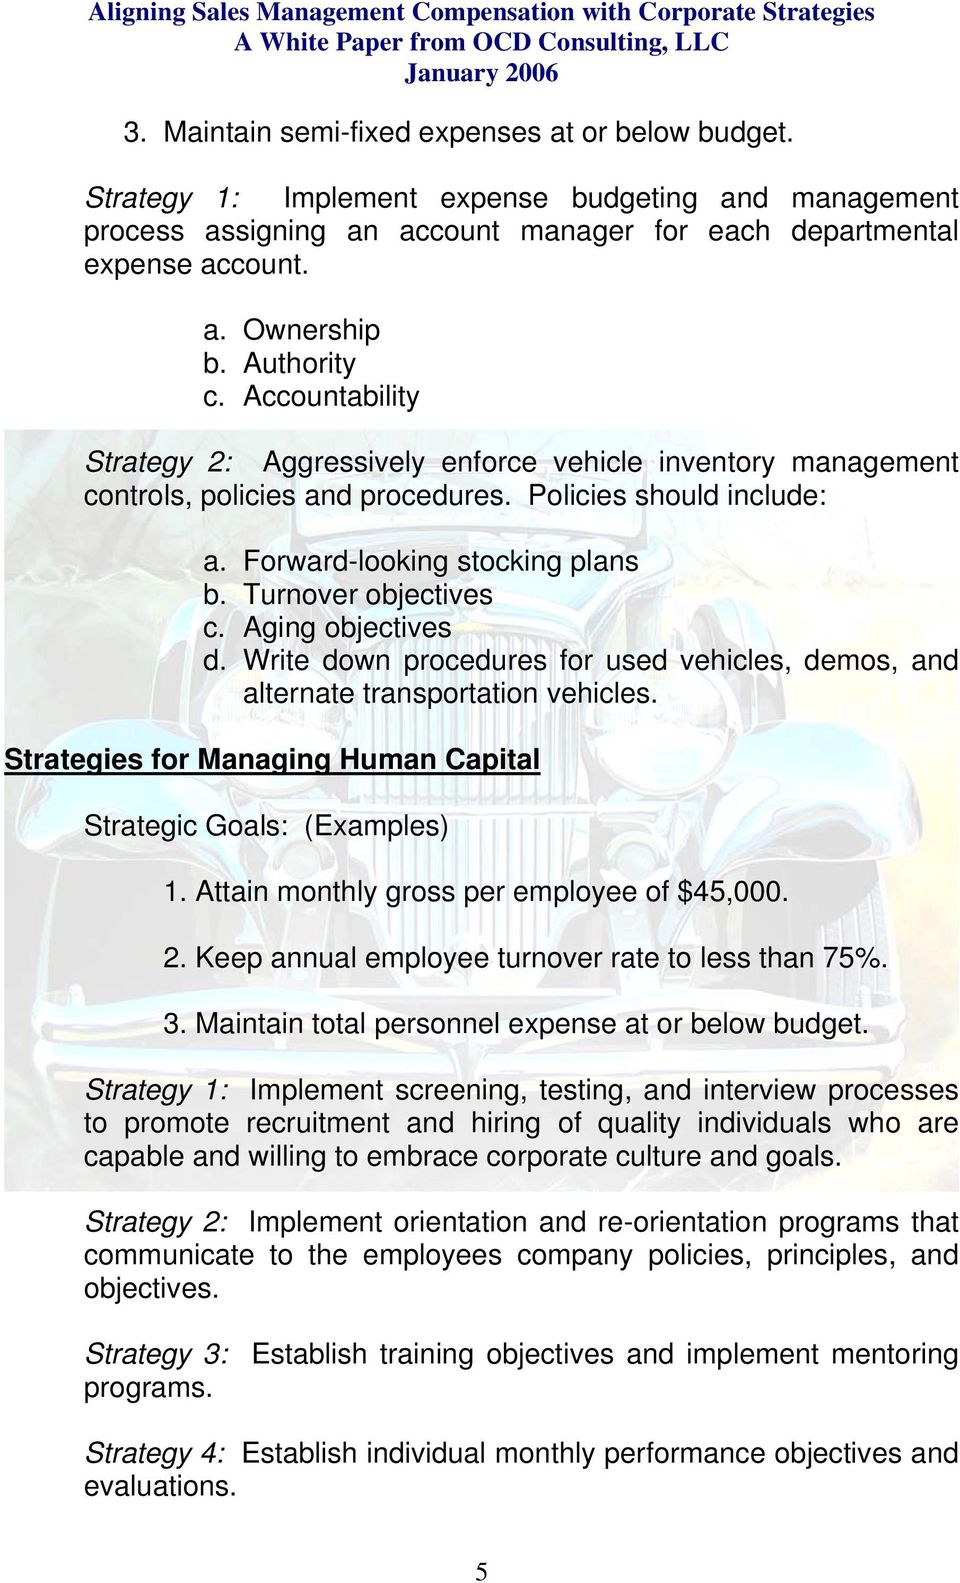 Turnover objectives c. Aging objectives d. Write down procedures for used vehicles, demos, and alternate transportation vehicles. Strategies for Managing Human Capital Strategic Goals: (Examples) 1.